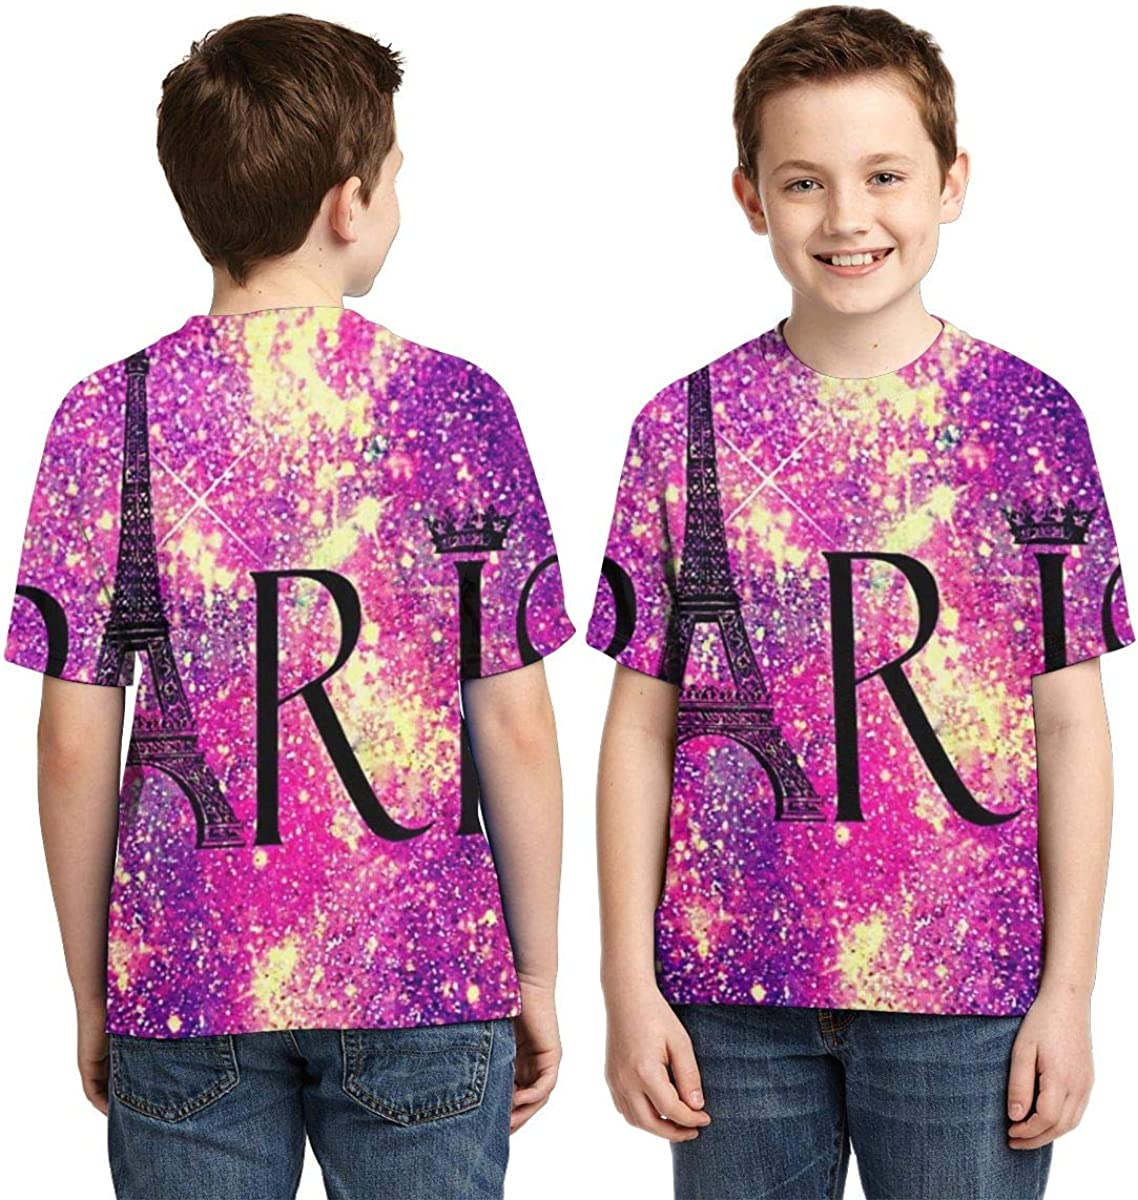 Paris Galaxy Full Printed Short Sleeve Crew Neck Tees Summer Tops for Boys Youth T-Shirts